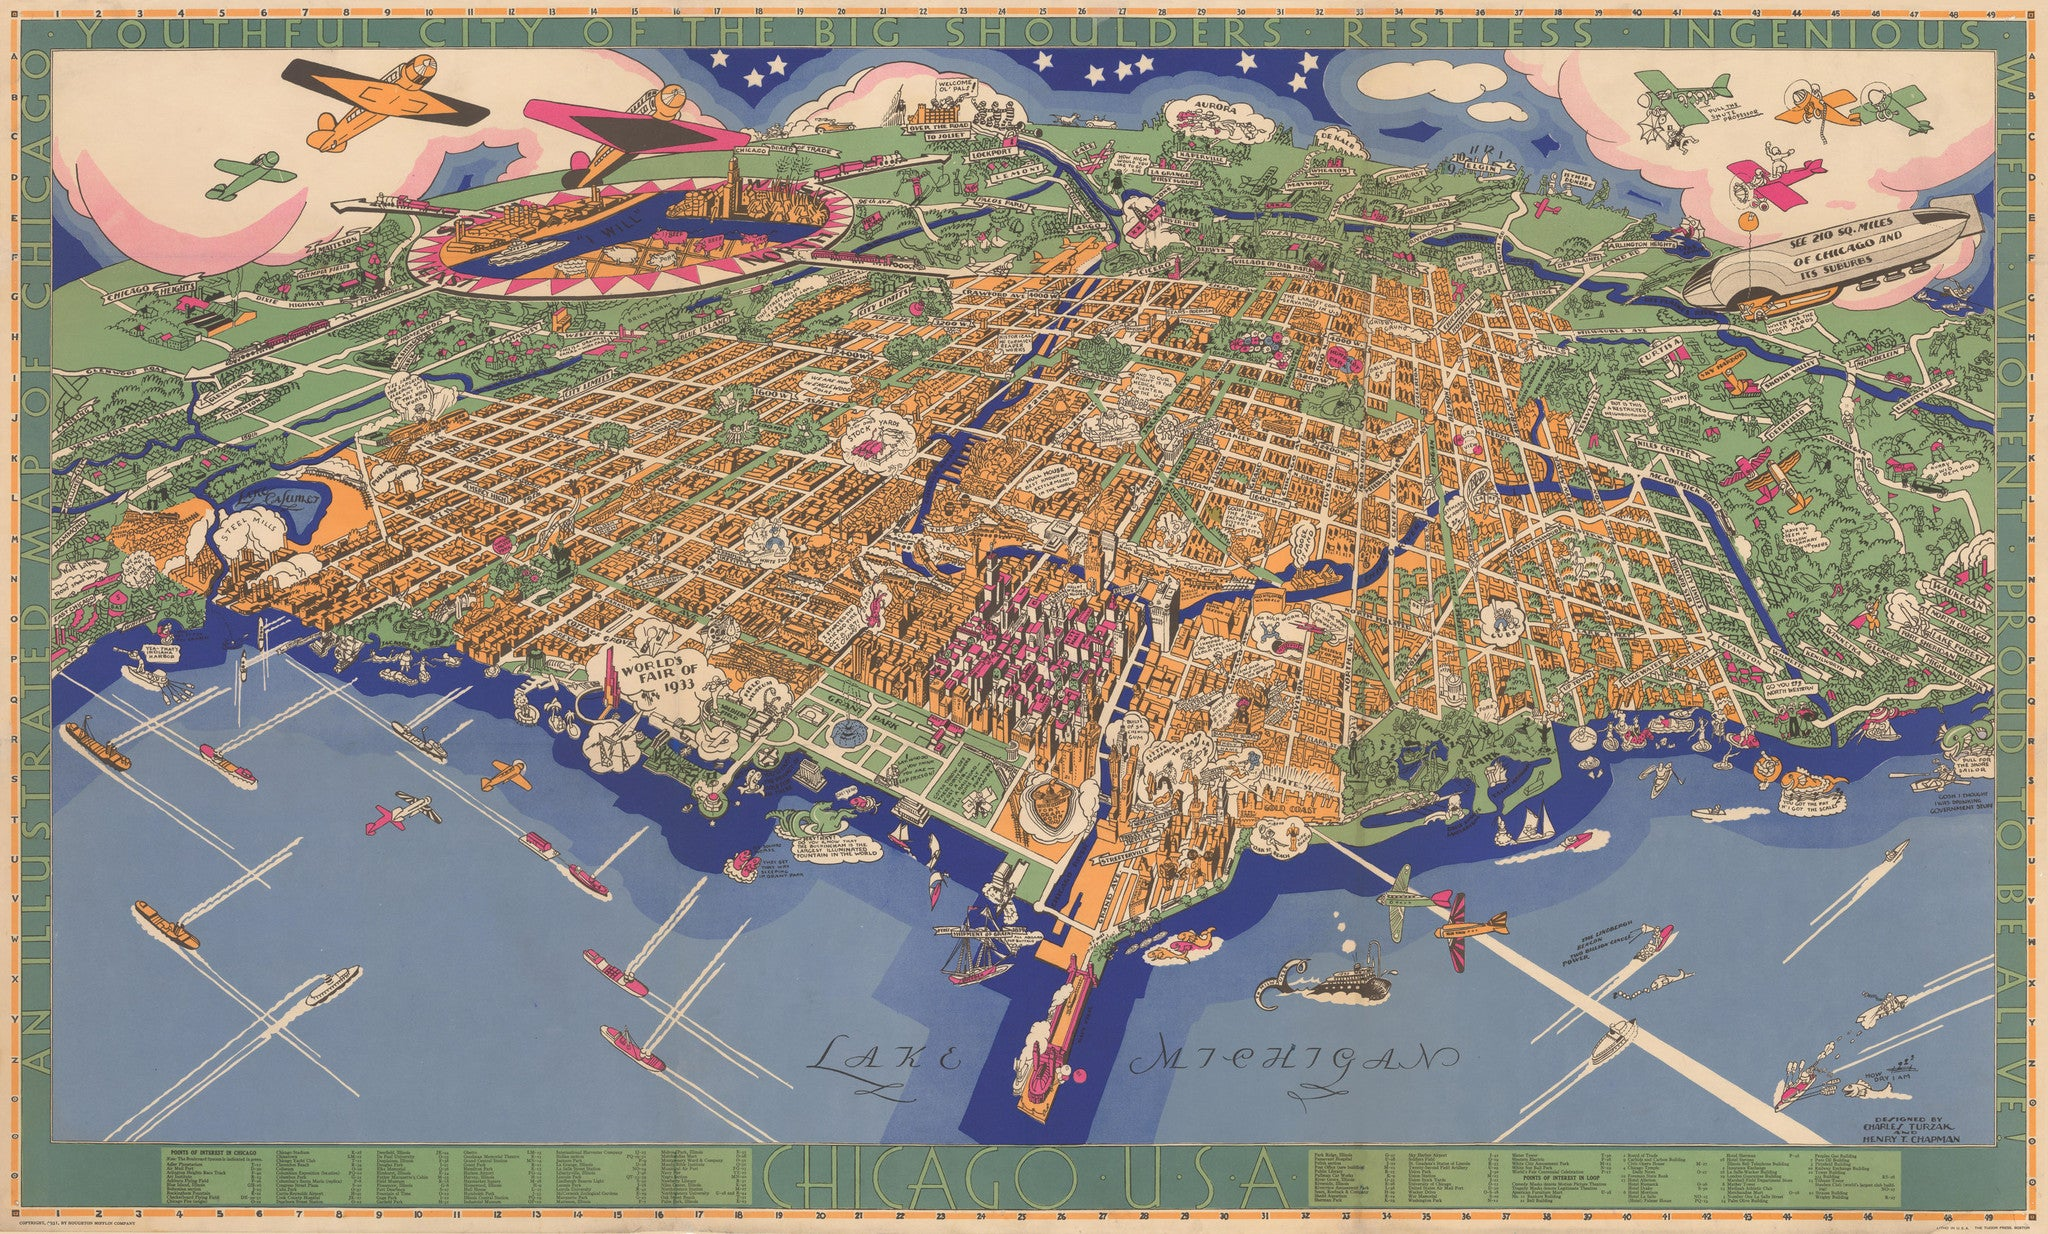 1931 An Illustrated Map of Chicago the Vintage Map Shop Inc